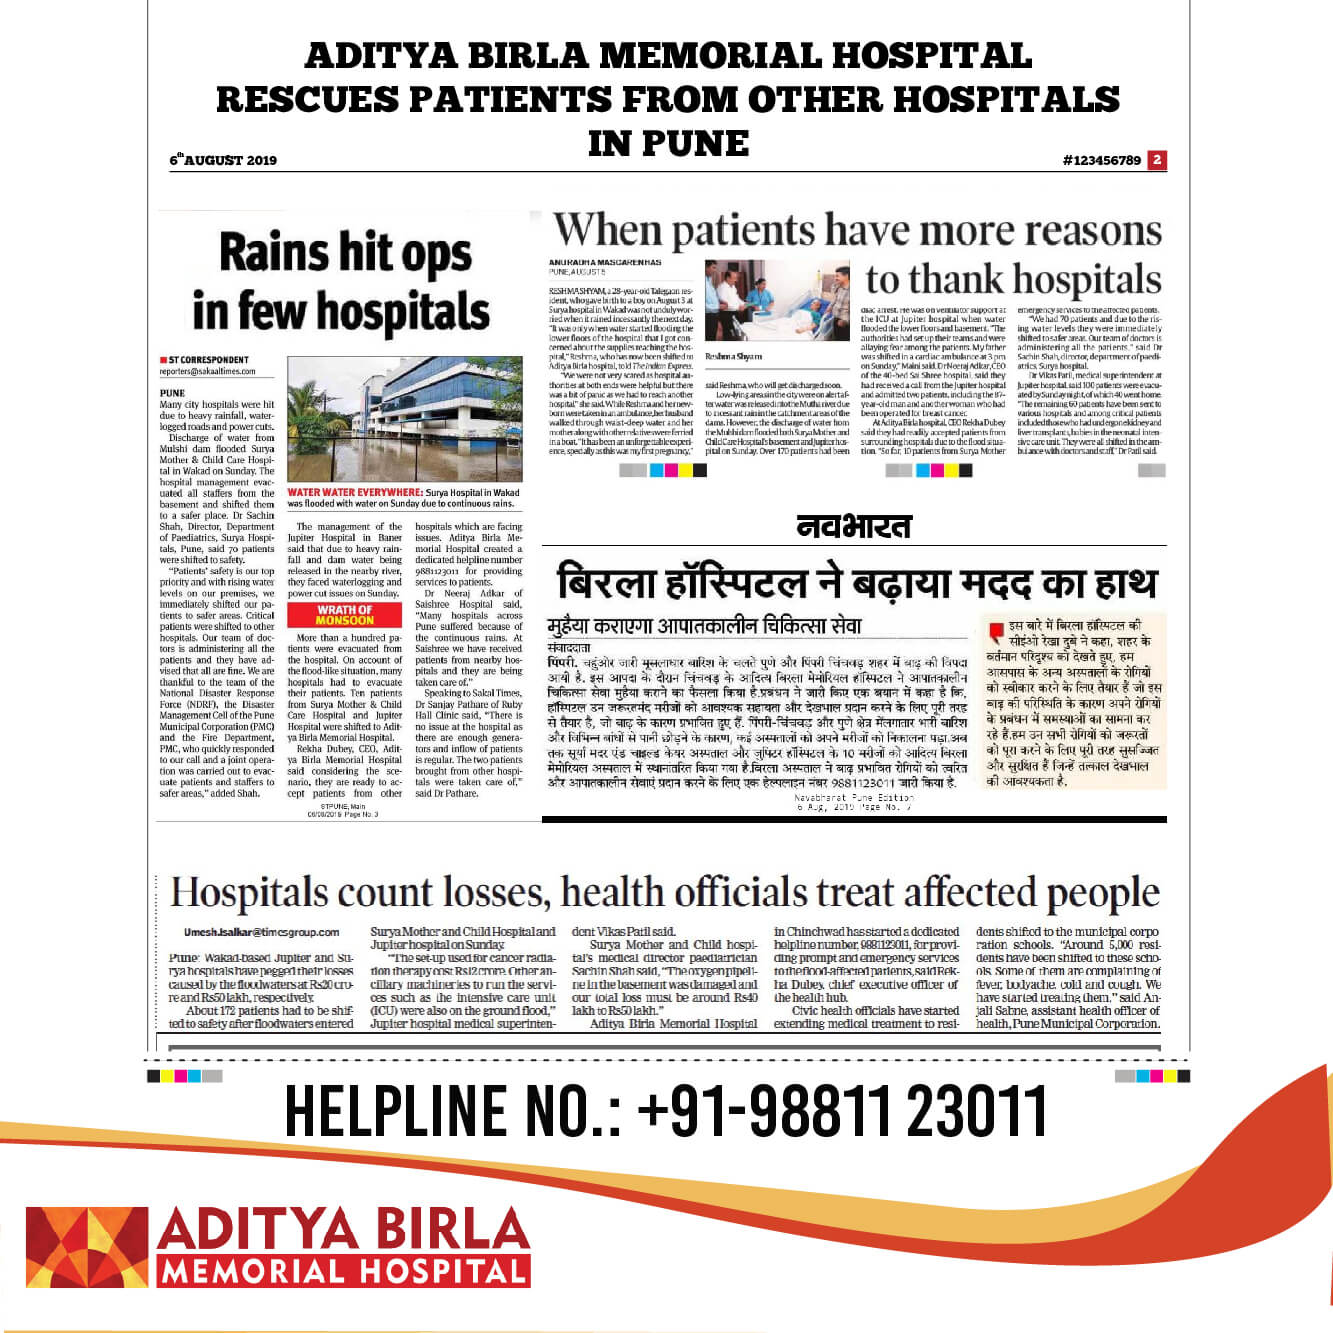 Aditya Birla Memorial Hospital has extended its healthcare emergency services to all the nearby rain-affected hospitals and medical centers.